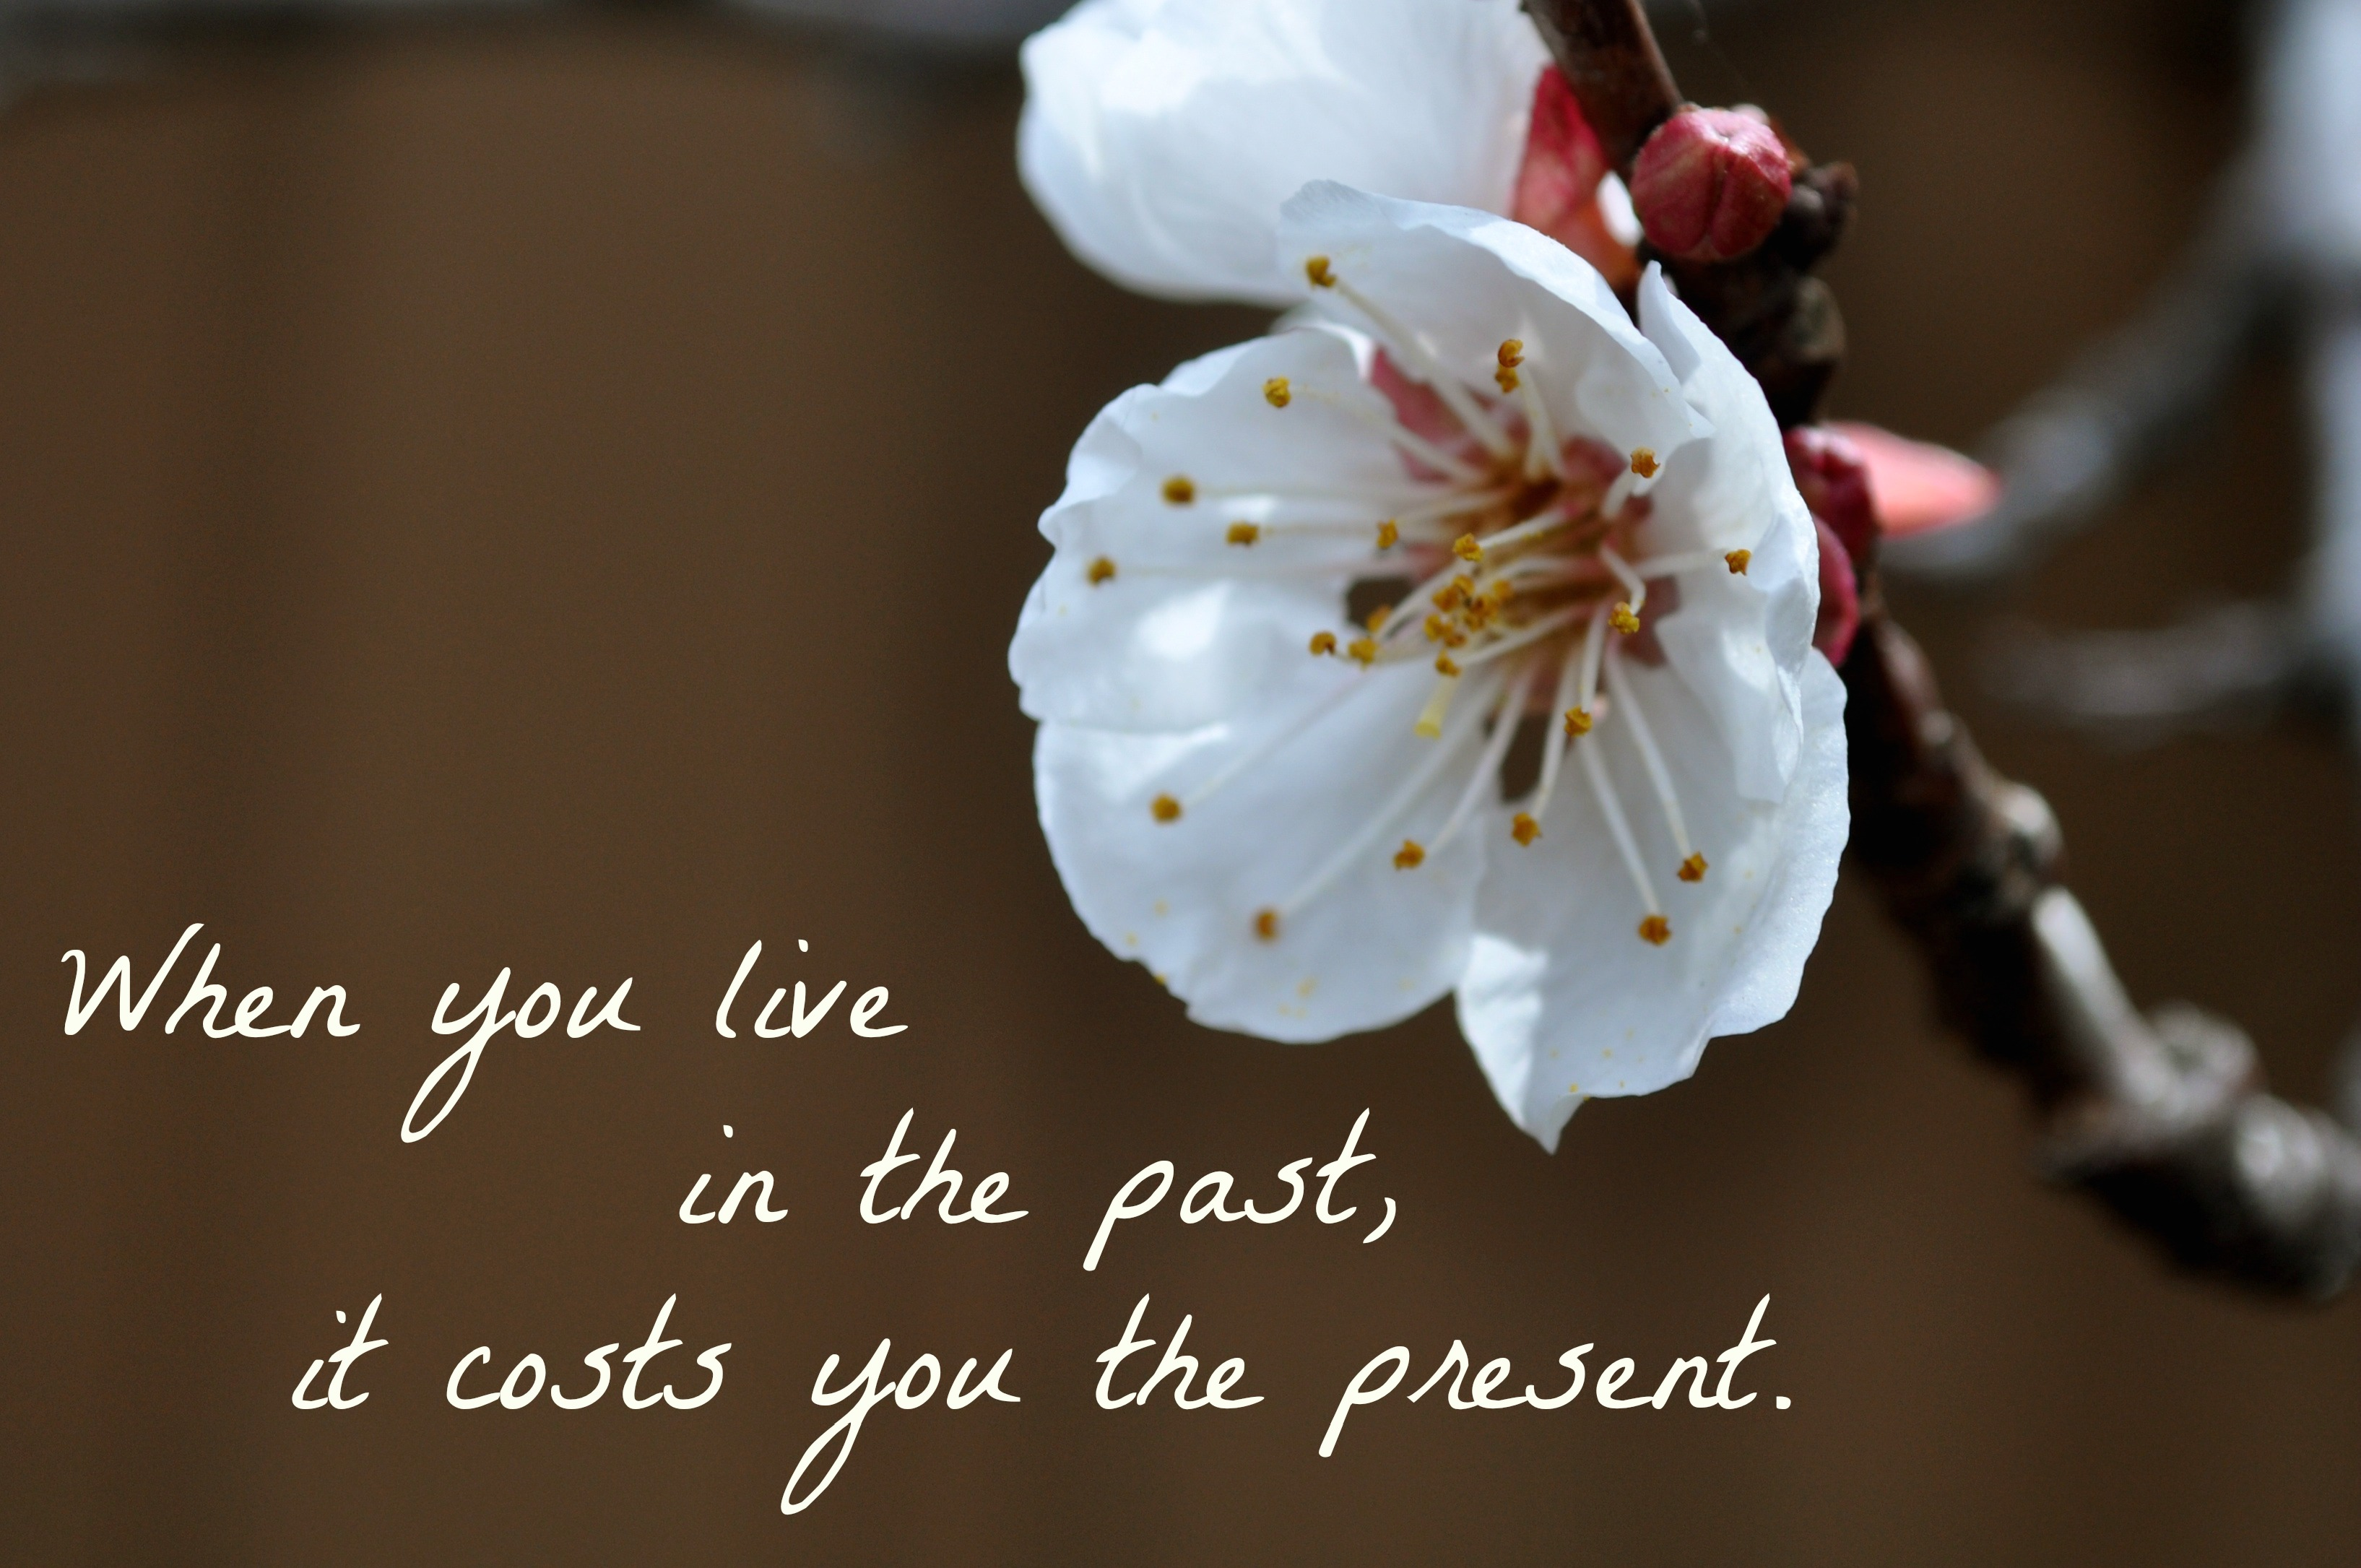 when-you-live-in-the-past-it-cost-you-the-present-simple-sojourns